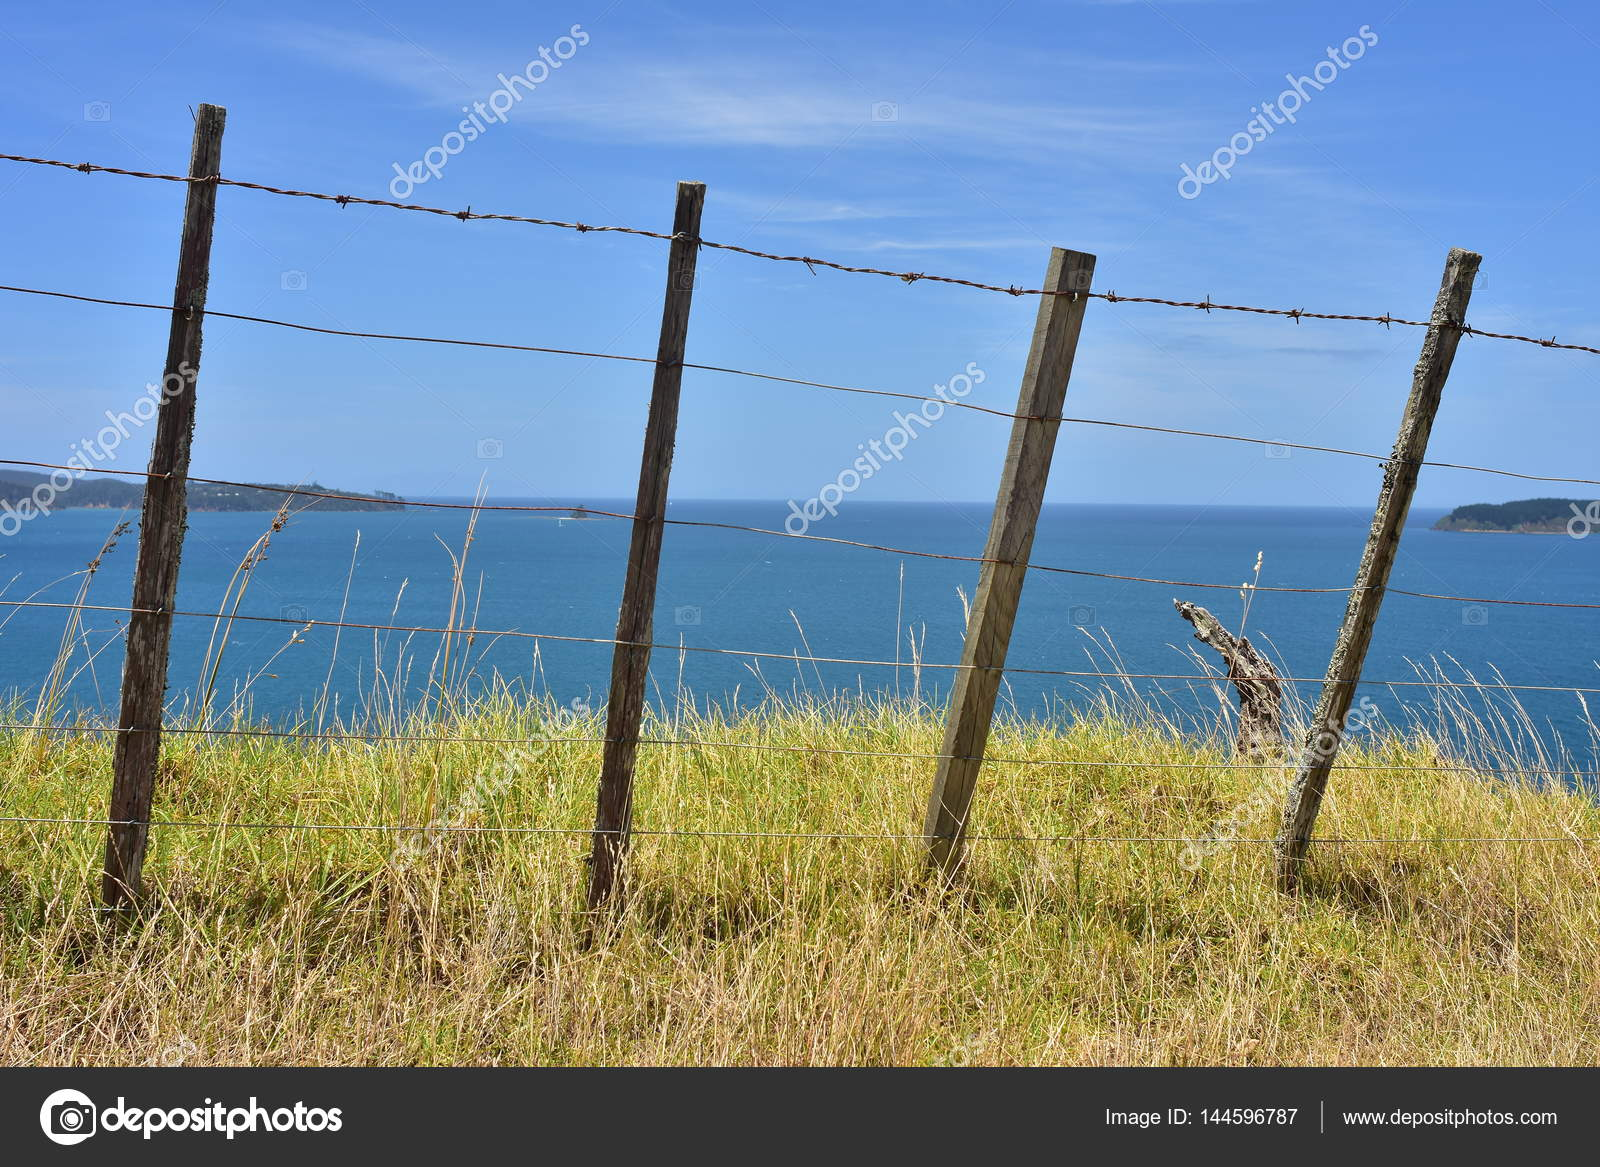 Cattle wire fence — Stock Photo © spiderment #144596787